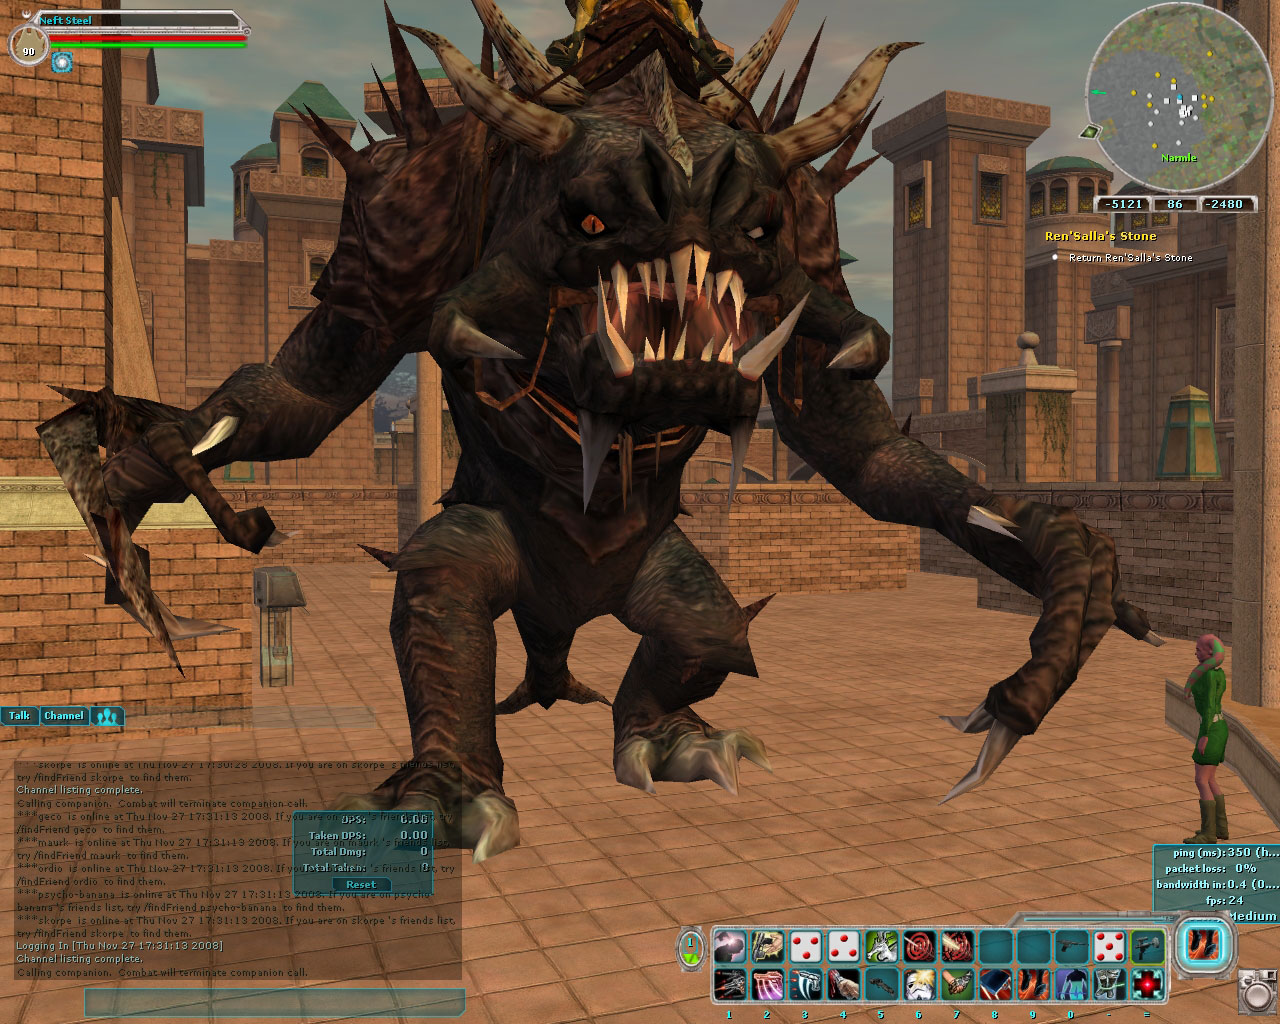 Riding my mutant rancor like a champ.